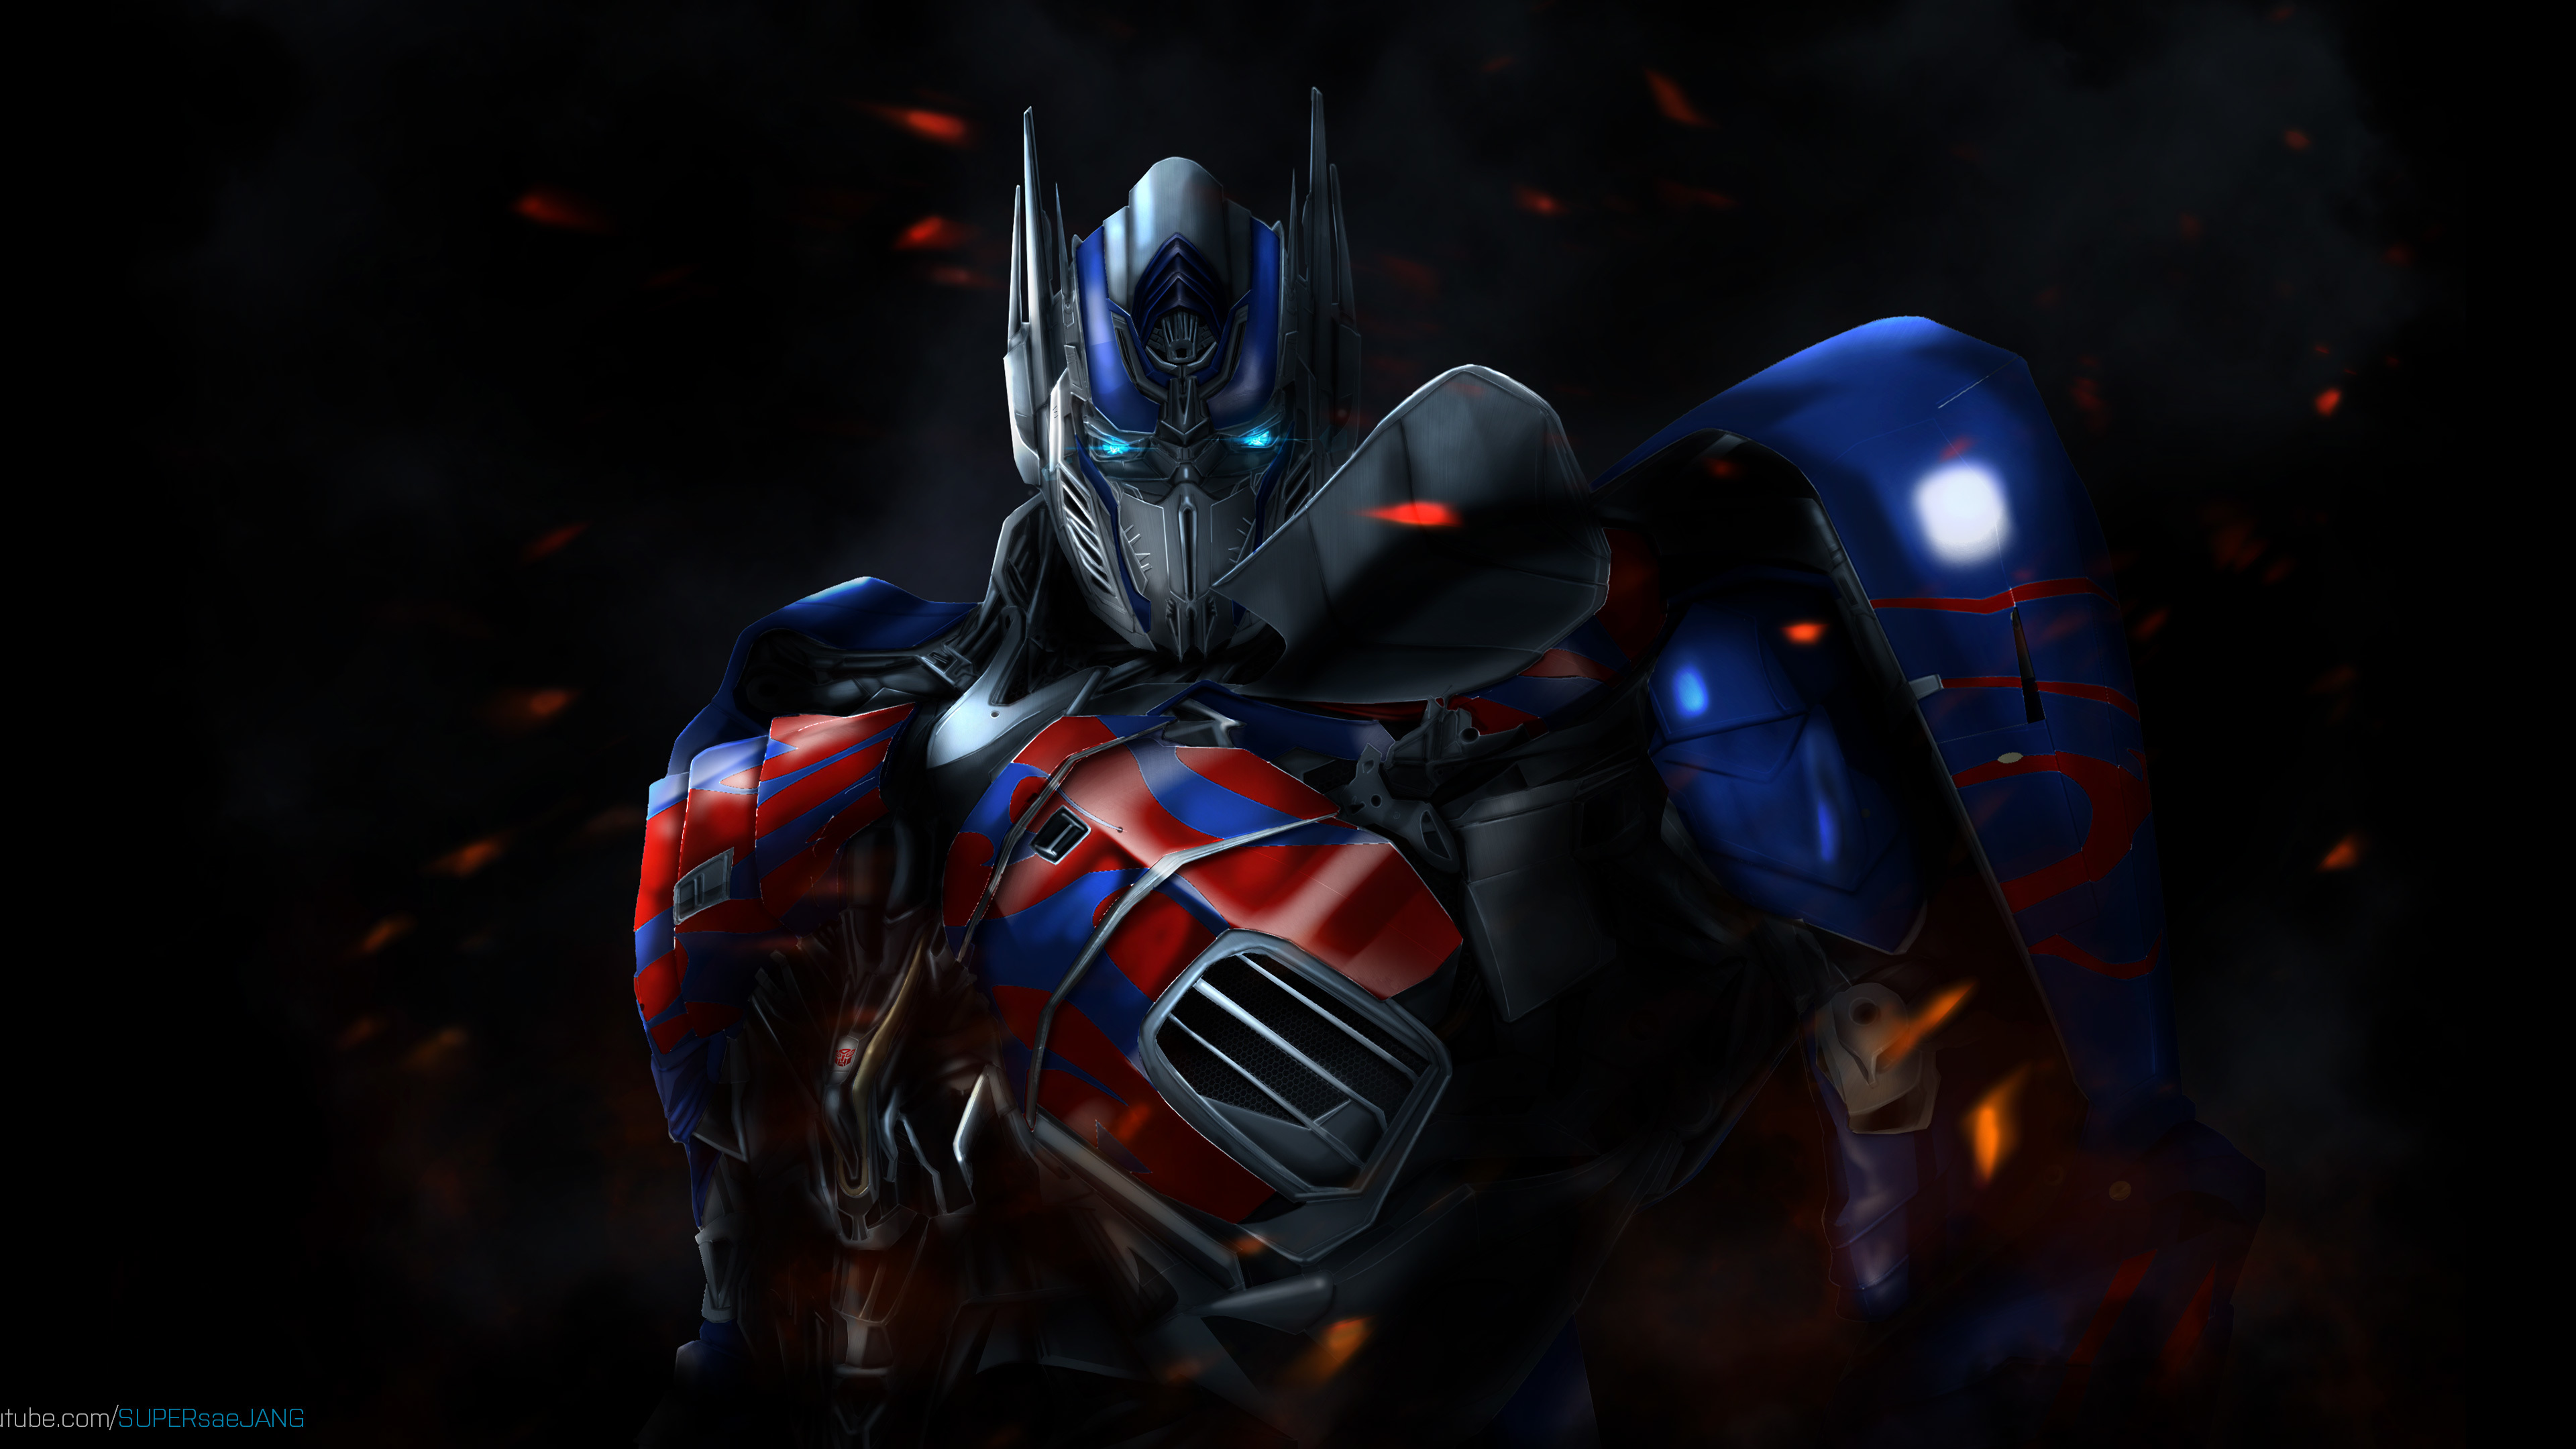 optimus prime 4k, hd movies, 4k wallpapers, images, backgrounds